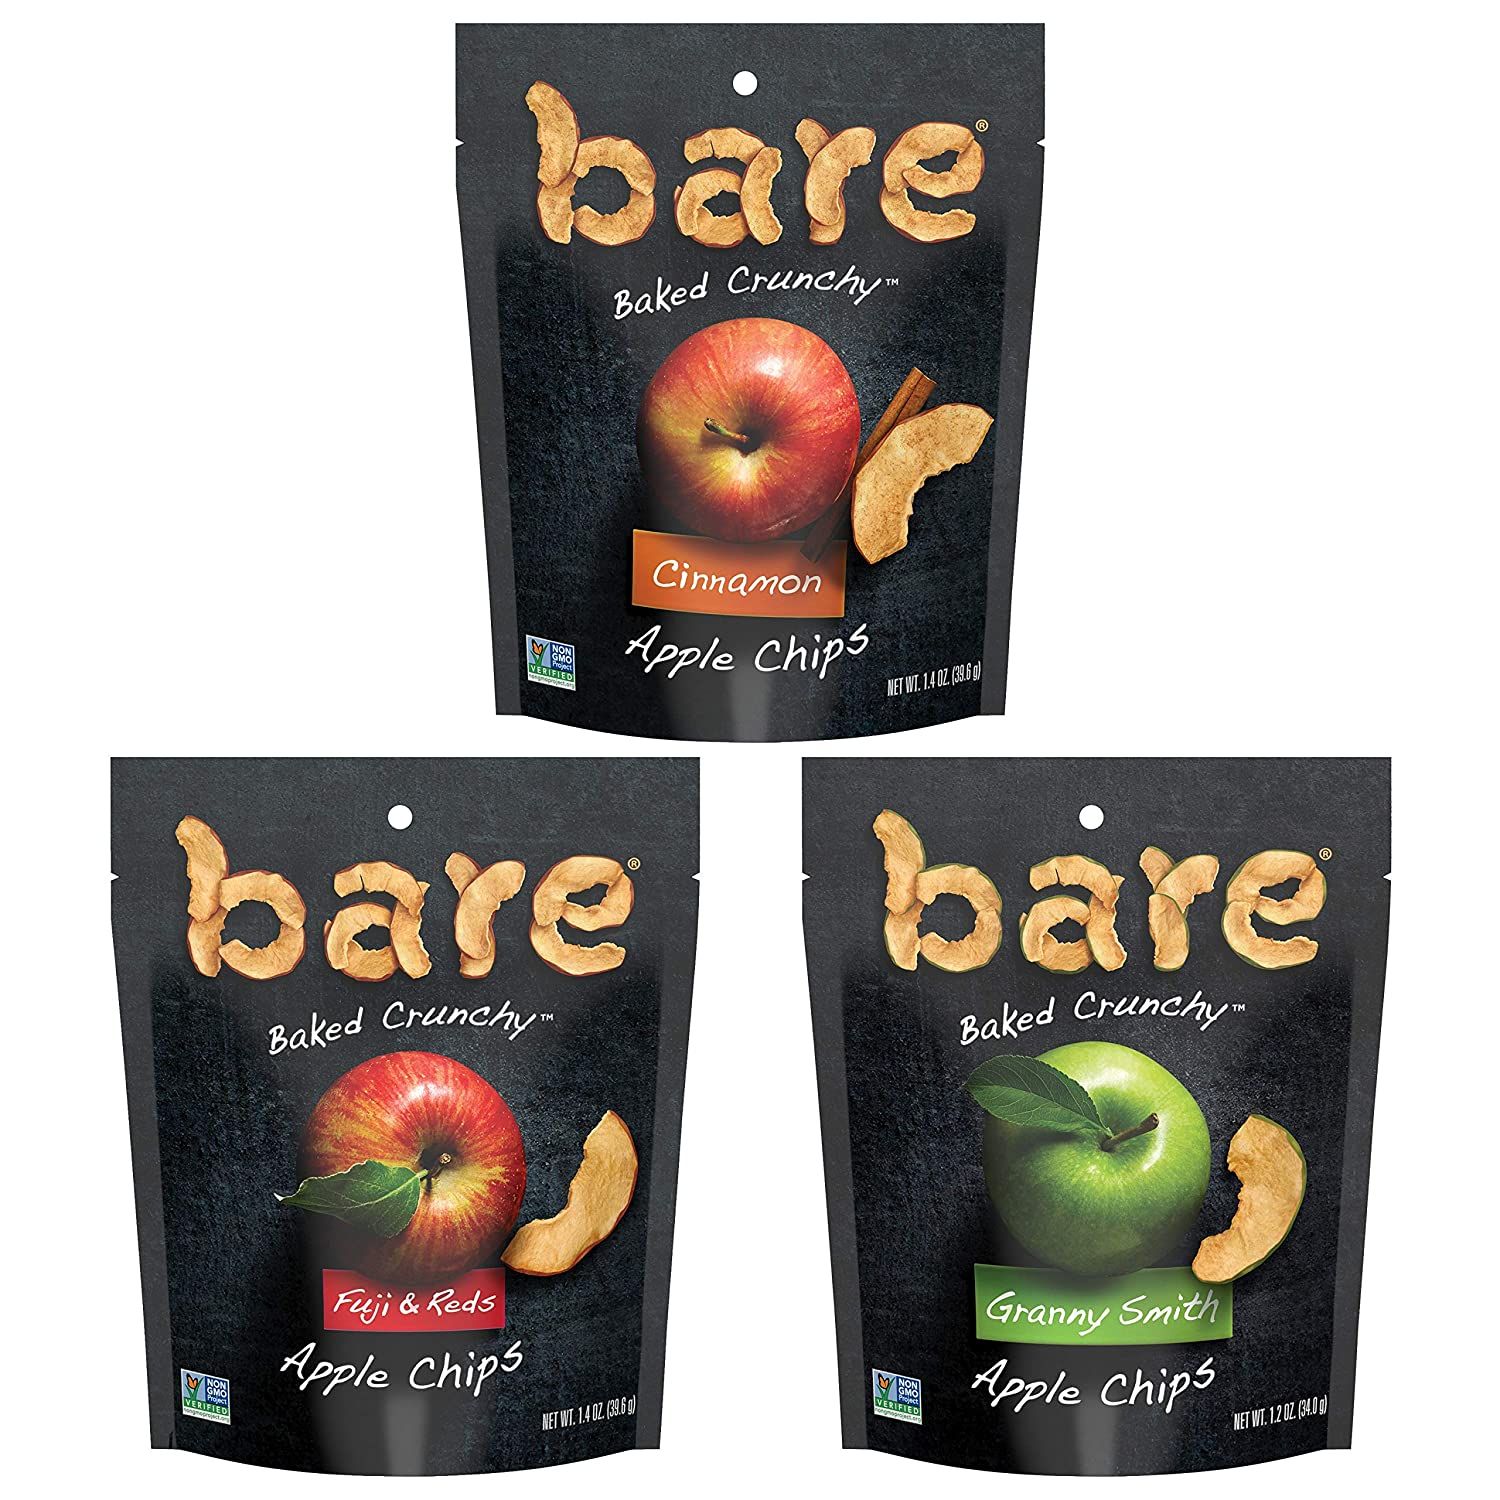 Bare Baked Crunchy Apple Chips, Variety Pack, Gluten Free, 1.2 Ounce/1.4 Ounce Bag, 6 Count